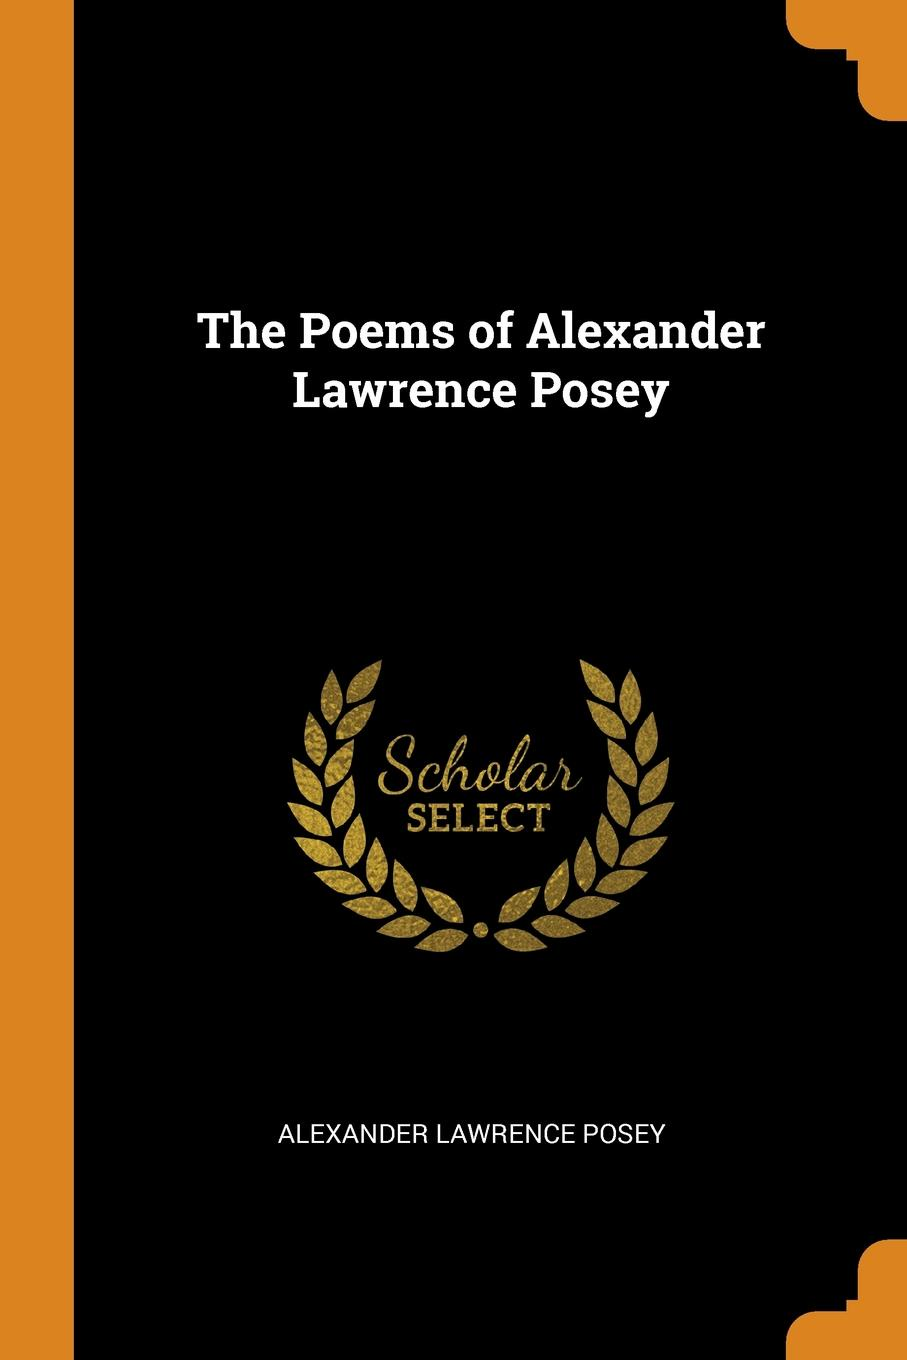 Alexander Lawrence Posey The Poems of Alexander Lawrence Posey delano ducasse lawrence o bryant and lynda t goodfellow survey of the knowledge